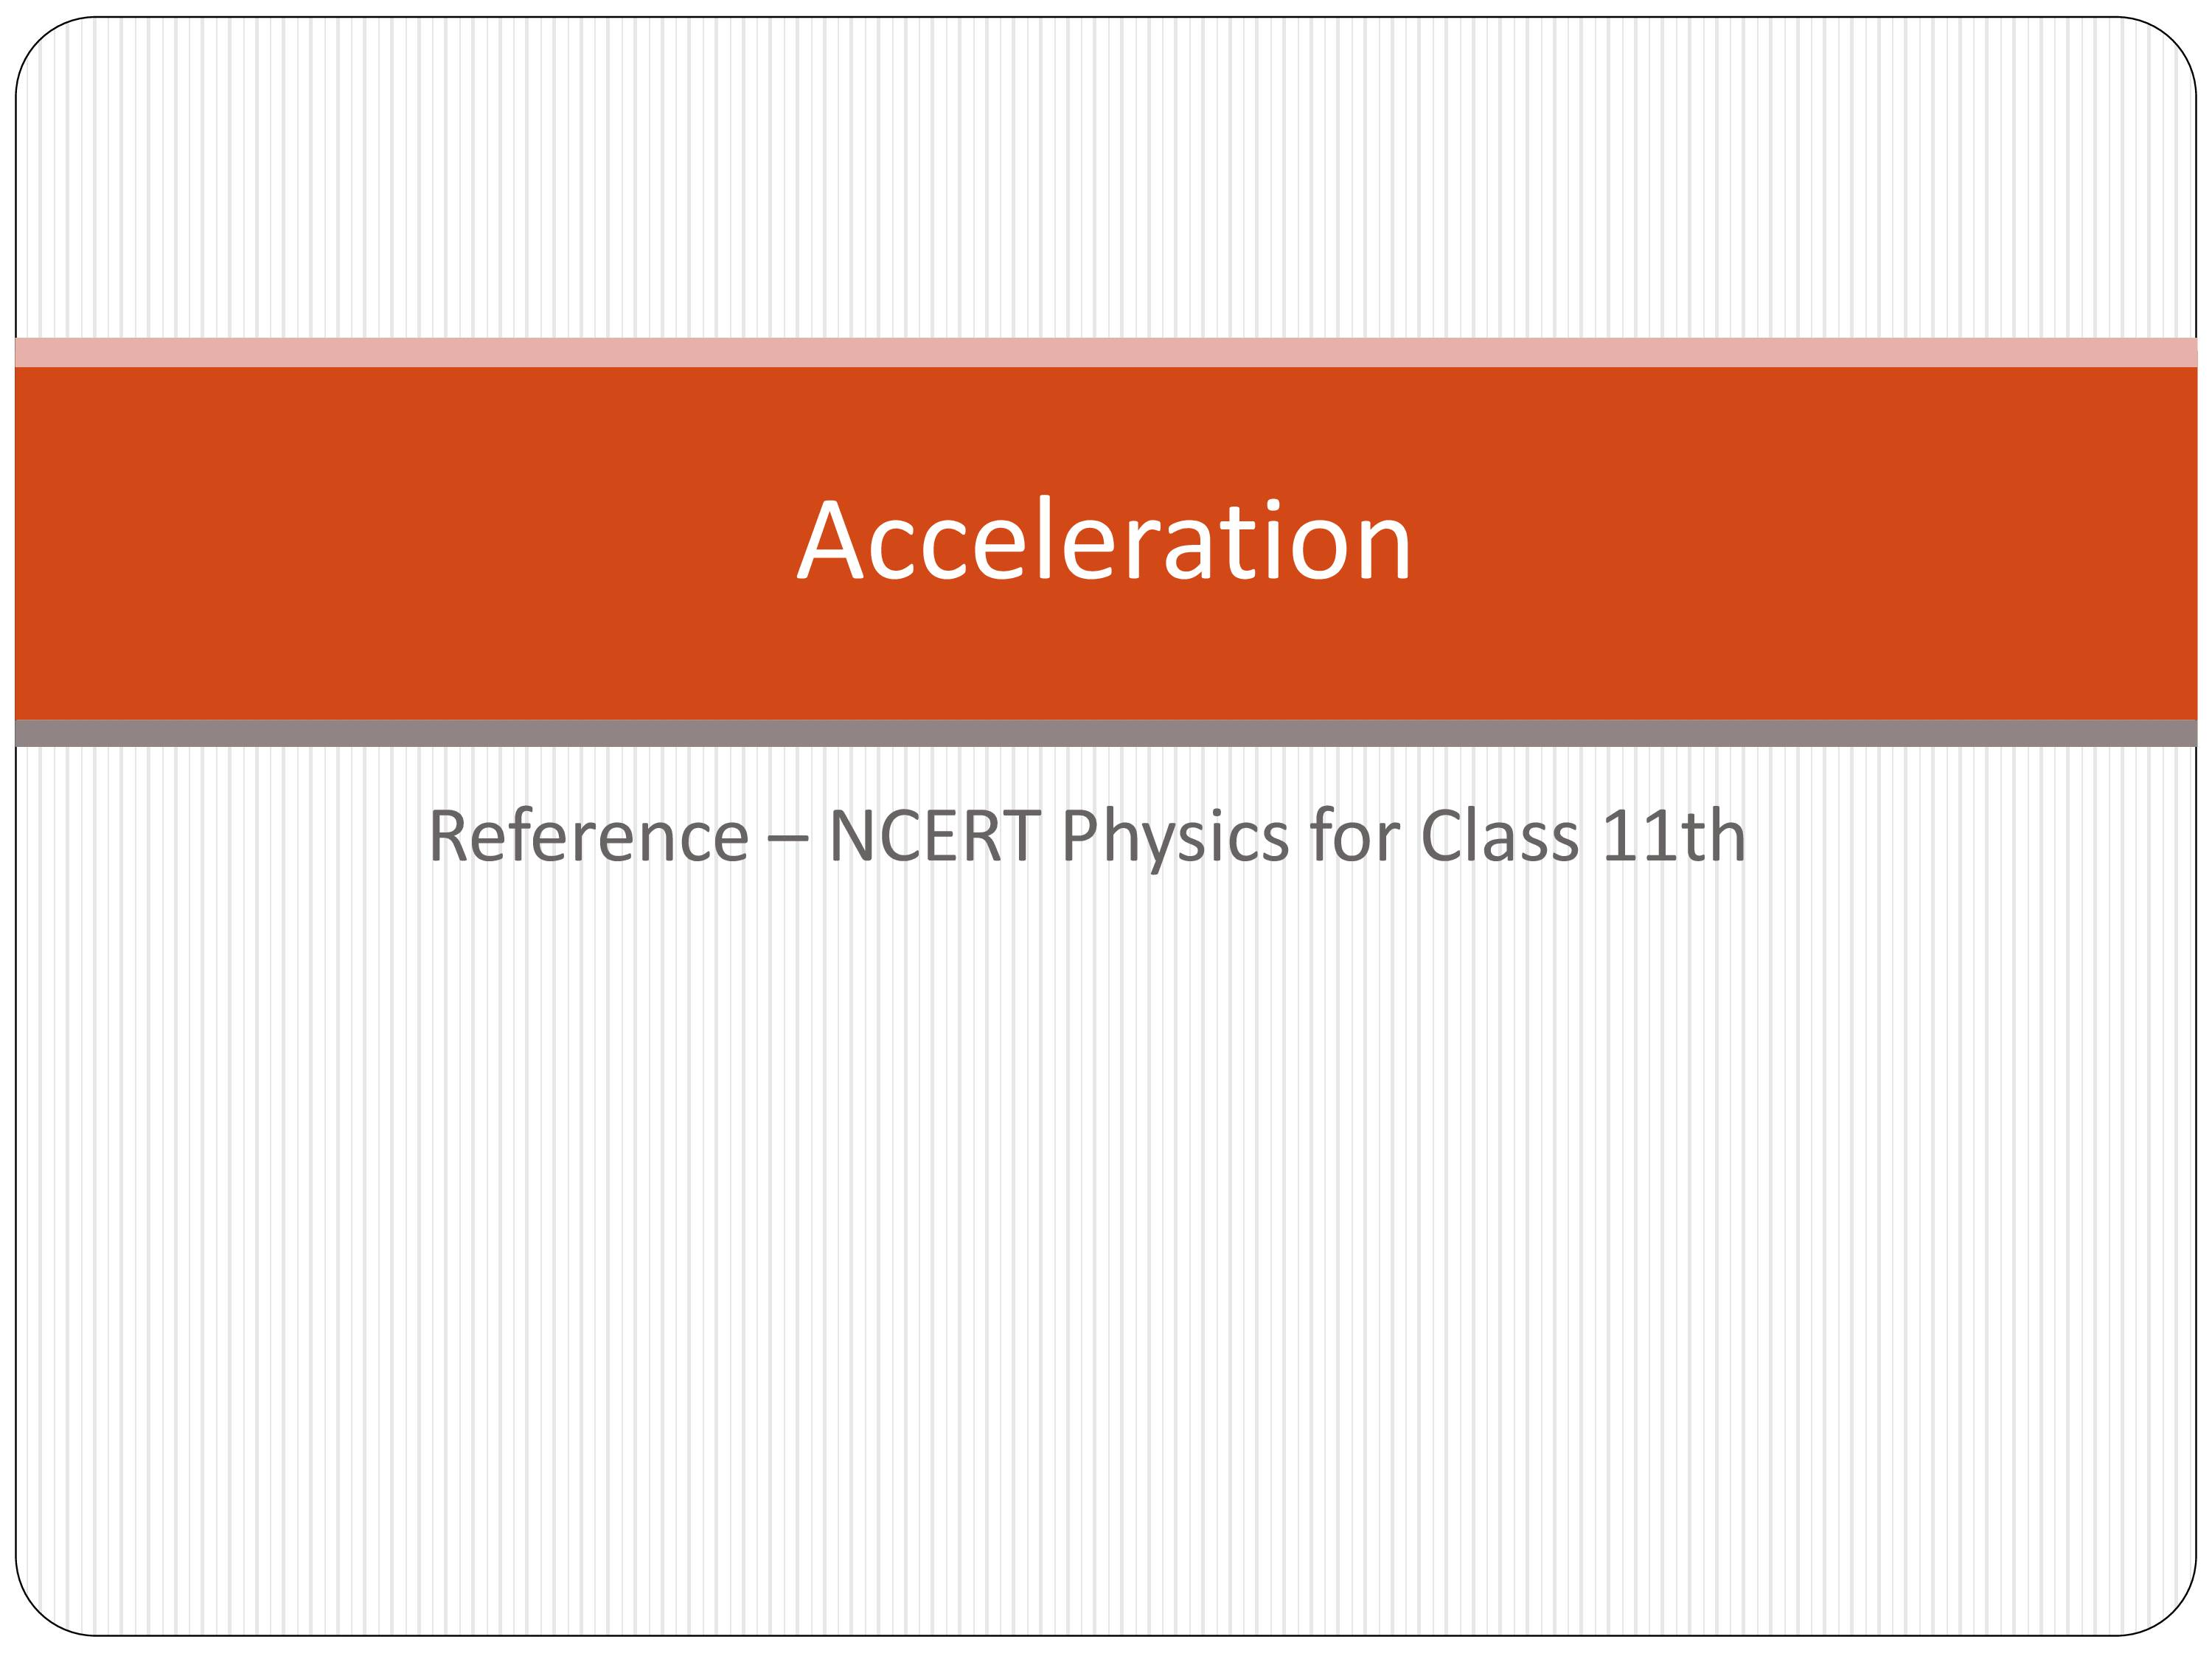 PPT on Acceleration